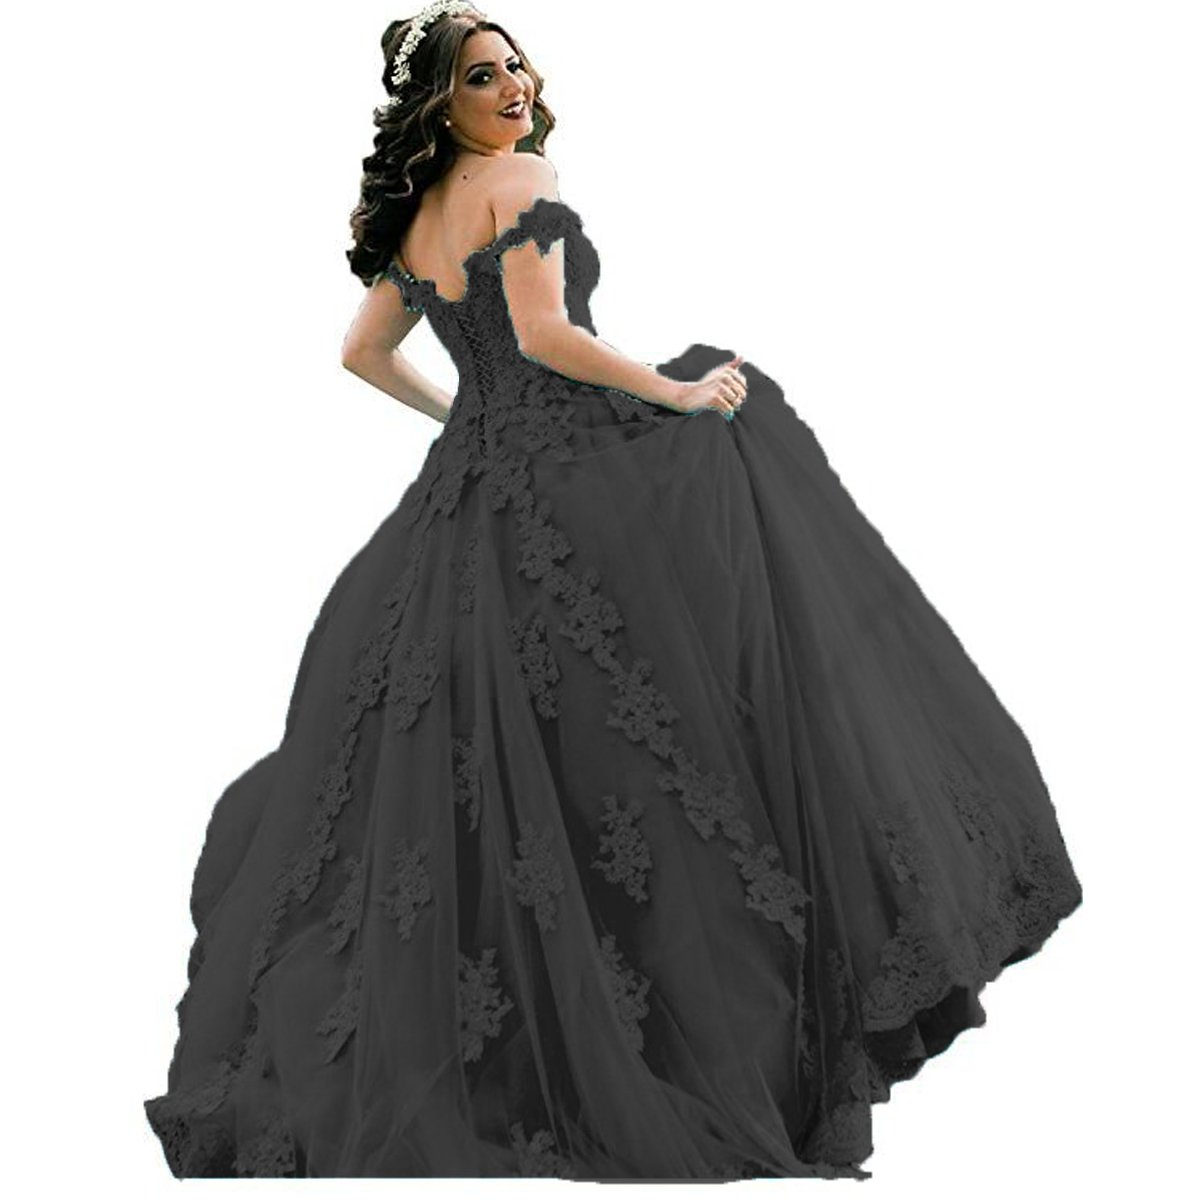 38b3b474f8d Yuxin Gorgeous Lace Off Shoulder Princess Ball Gown Quinceanera Dresses  Beaded Long Prom Dress Party Gowns at Amazon Women s Clothing store